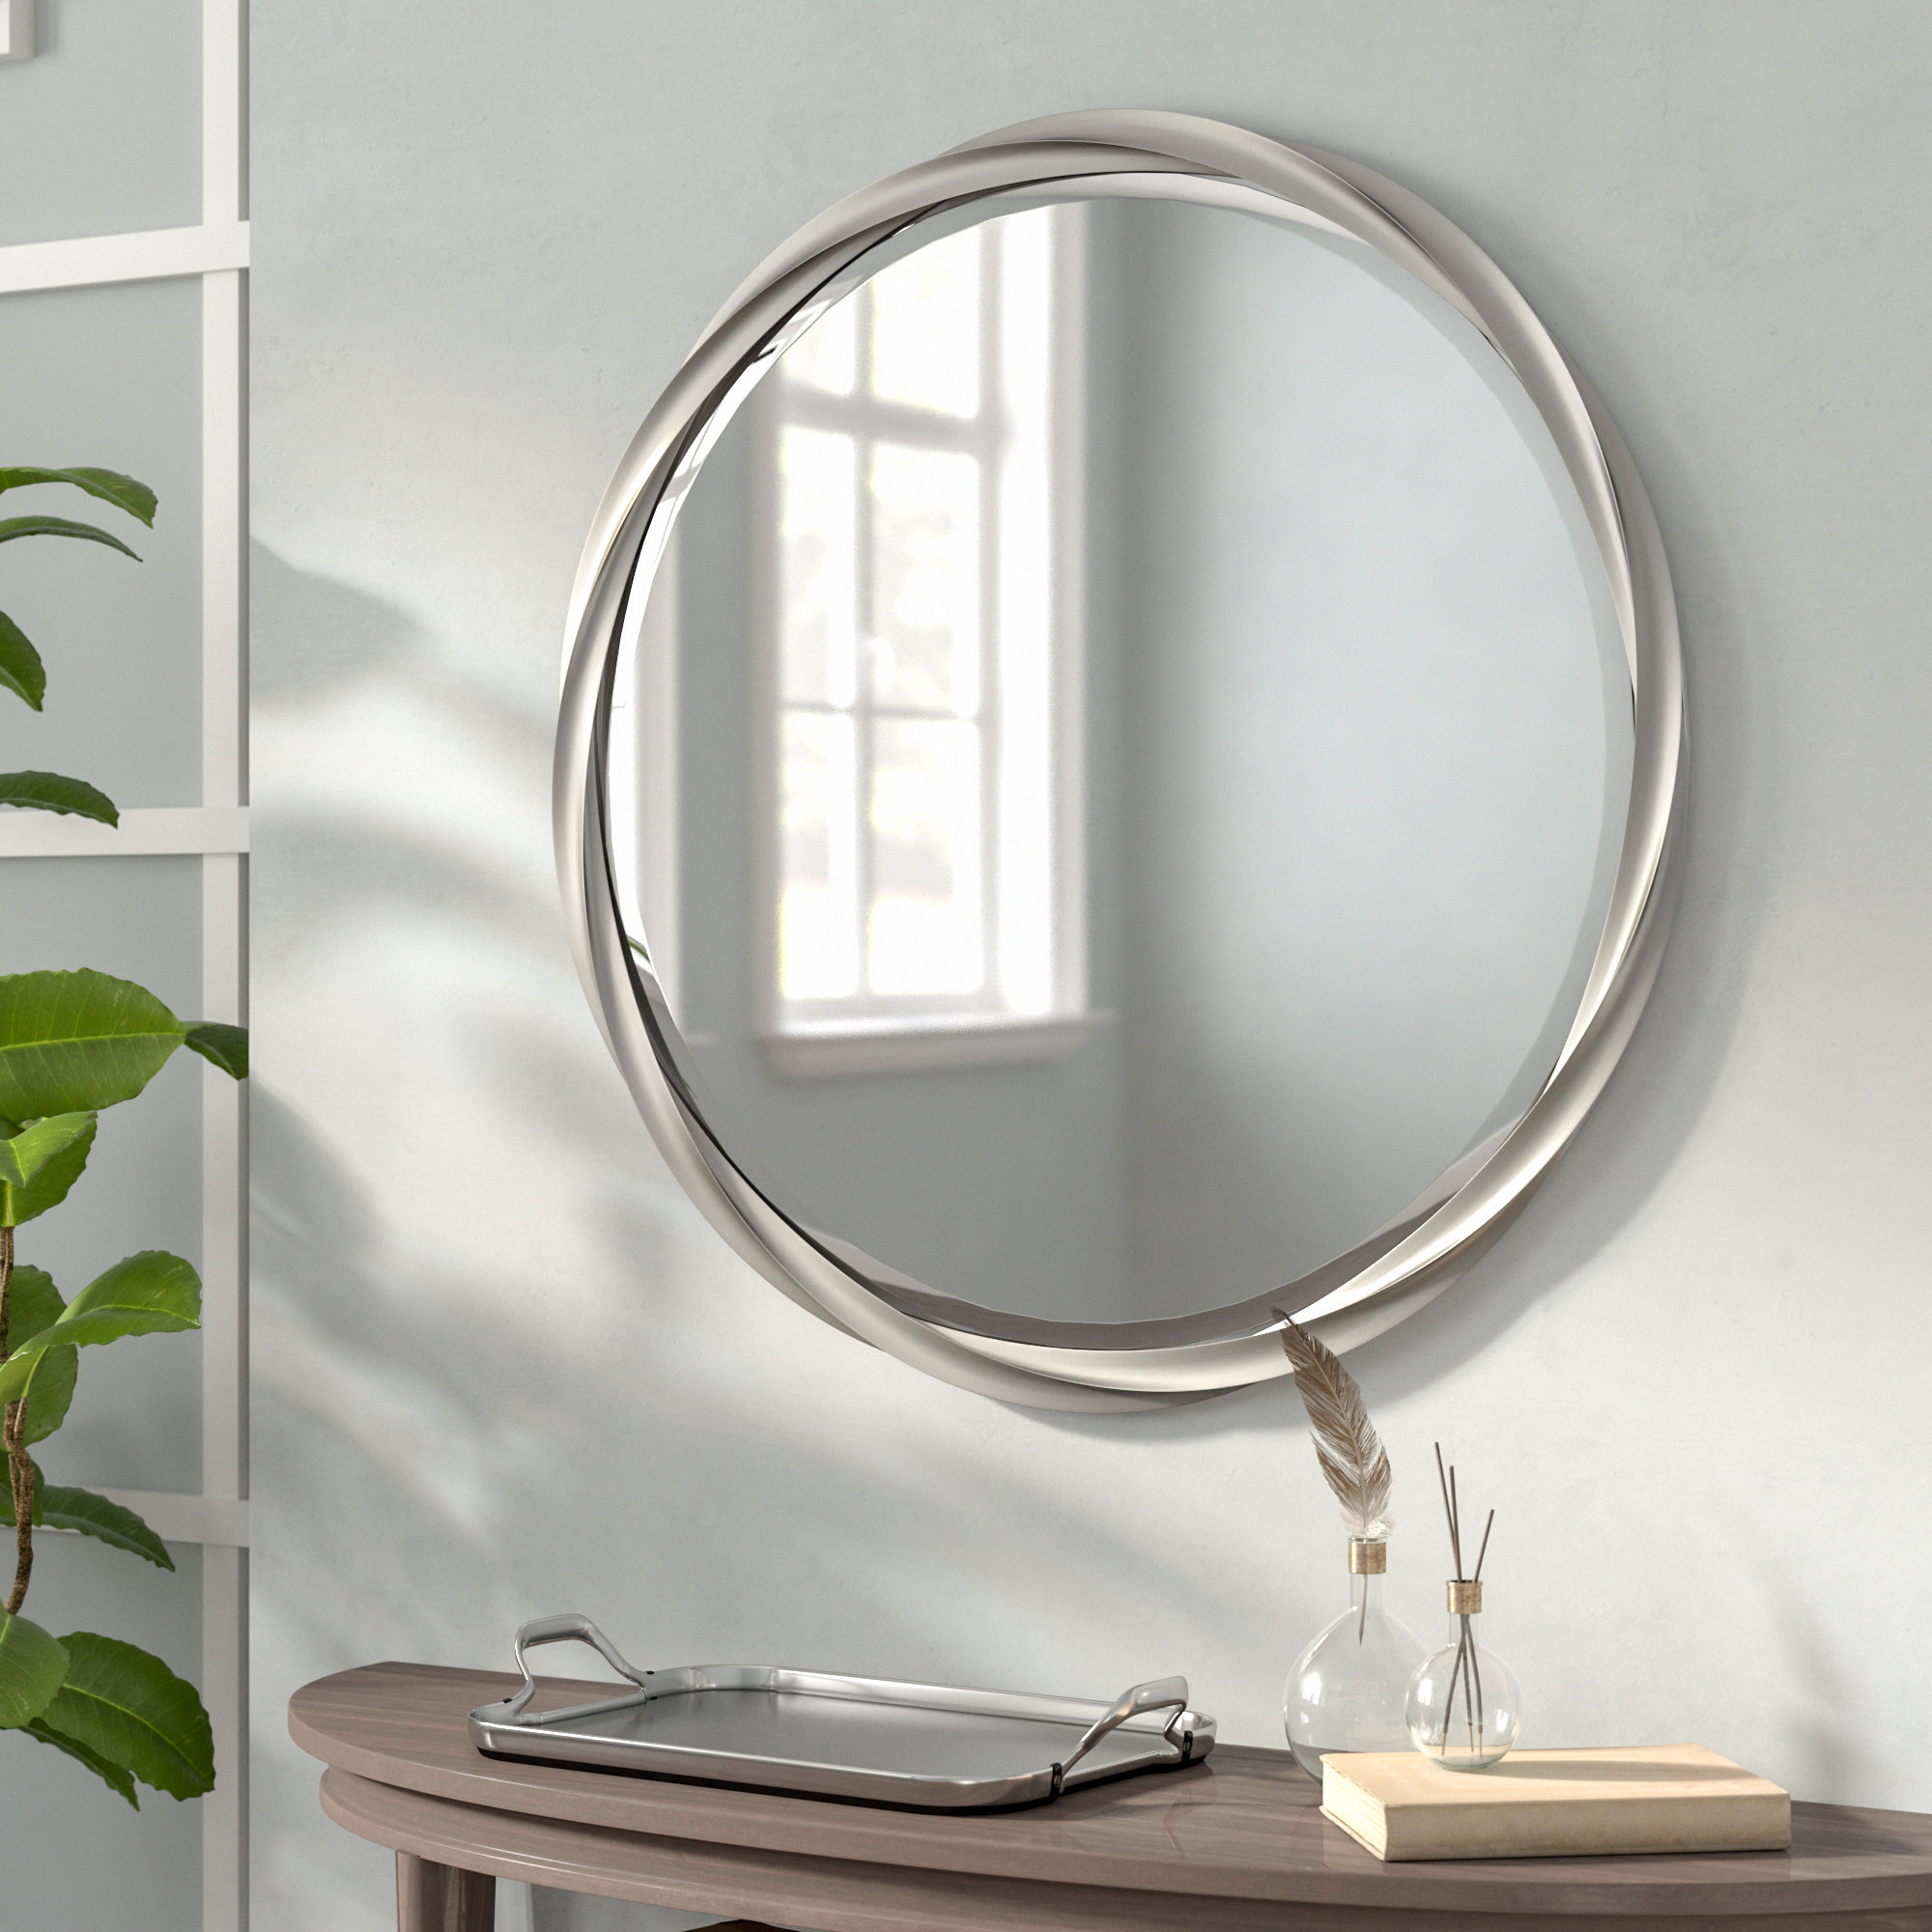 Modern & Contemporary Beveled Accent Mirrors Inside Best And Newest Modern & Contemporary Beveled Accent Mirror (View 8 of 20)